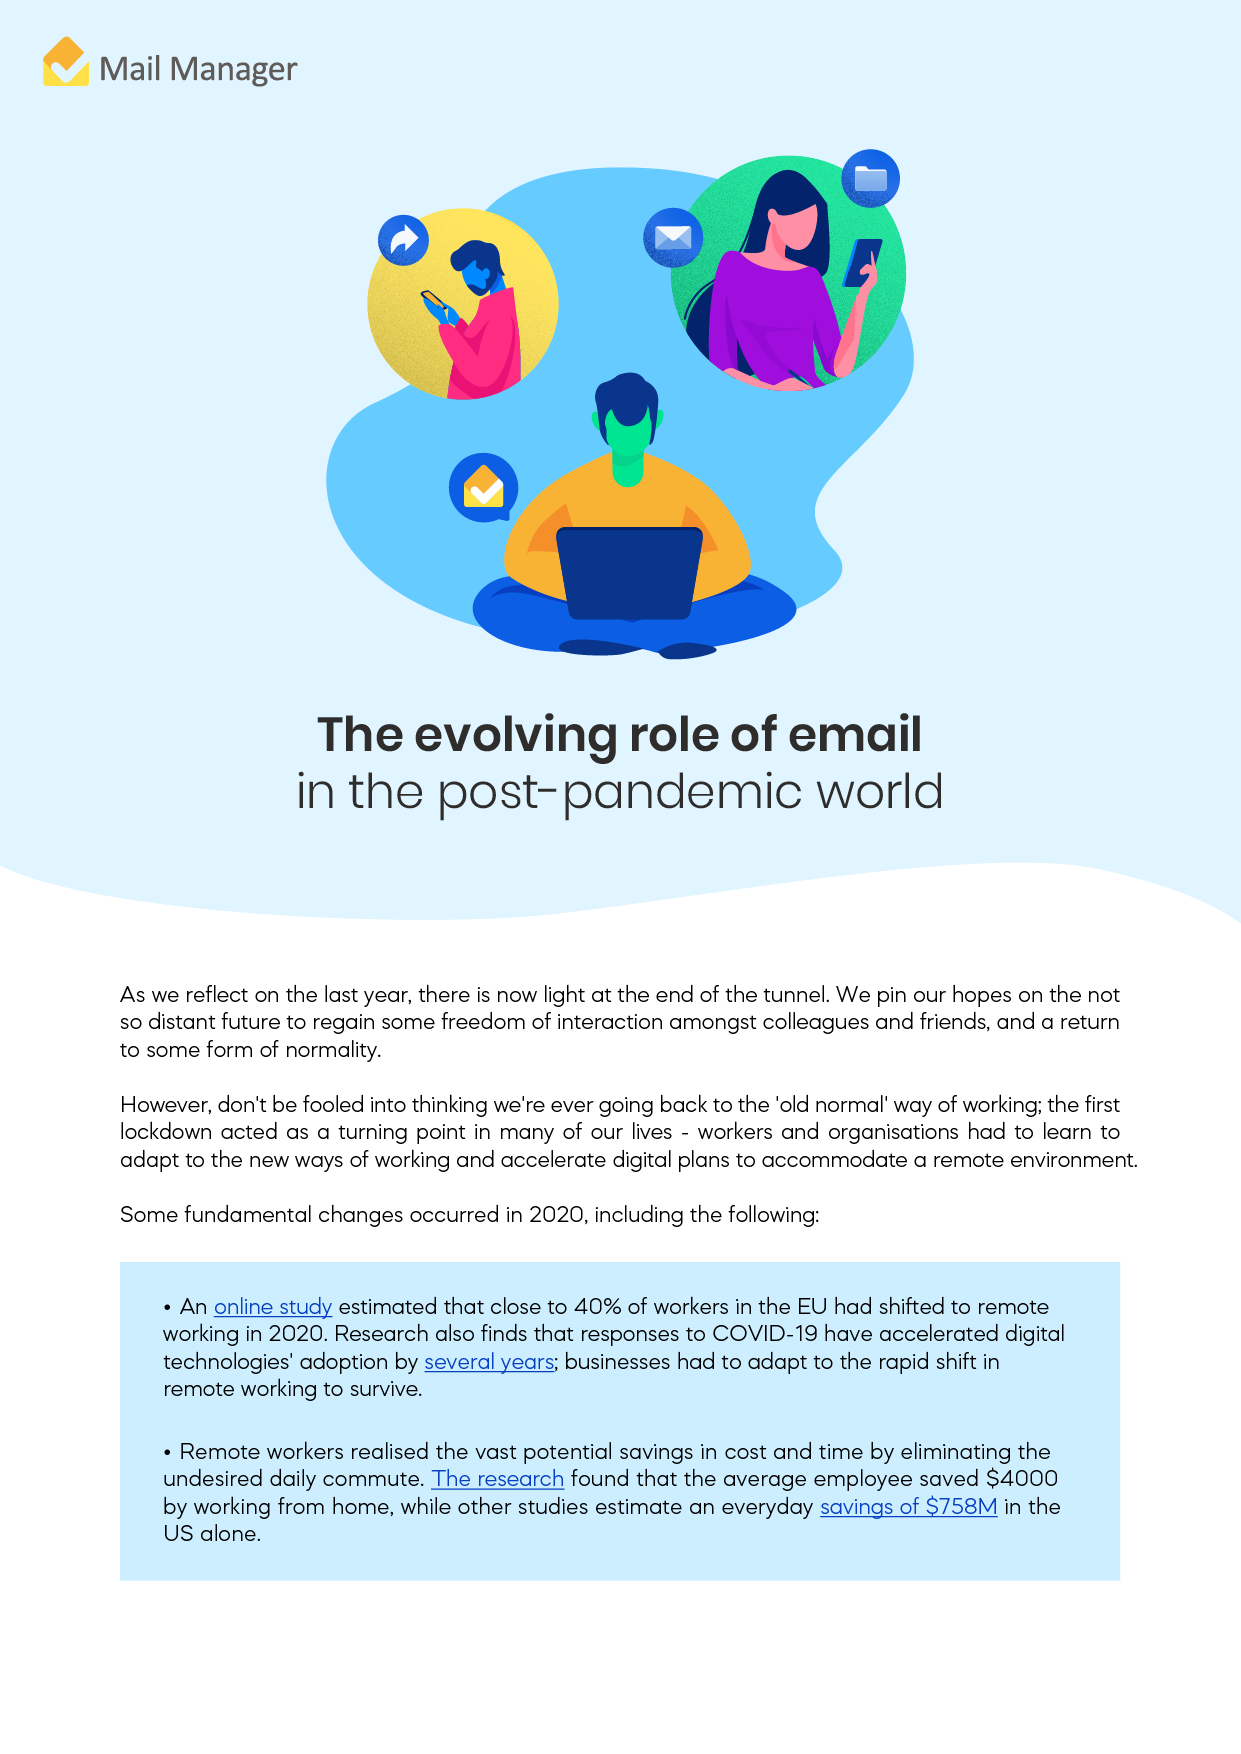 The evolving role of email in the post-pandemic world-01